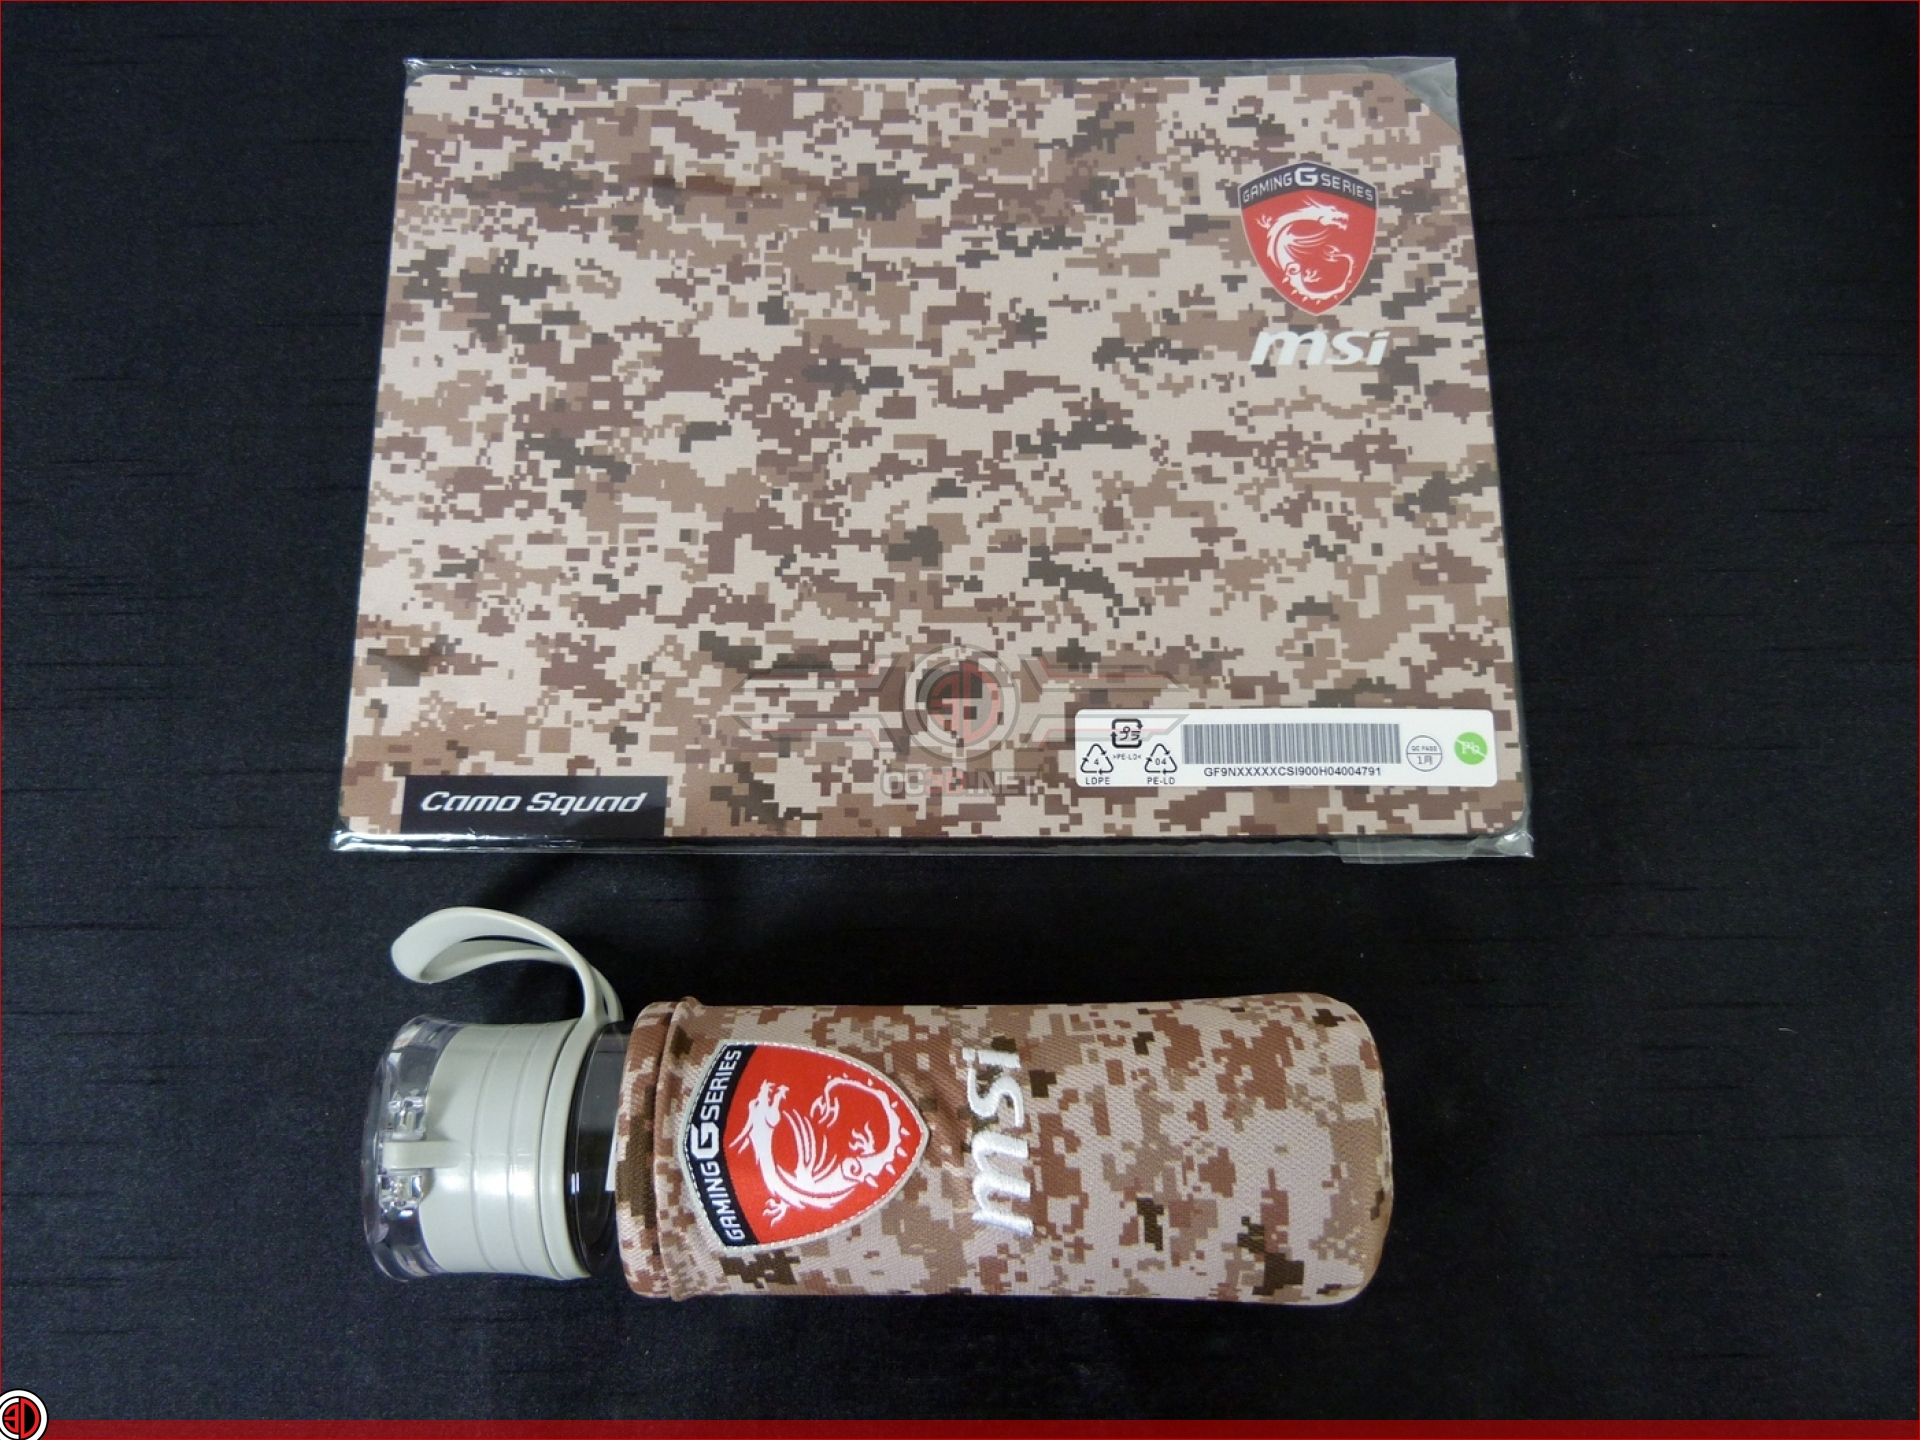 MSI GE62 7RE Camo Squad Review | Up Close - Packaging and